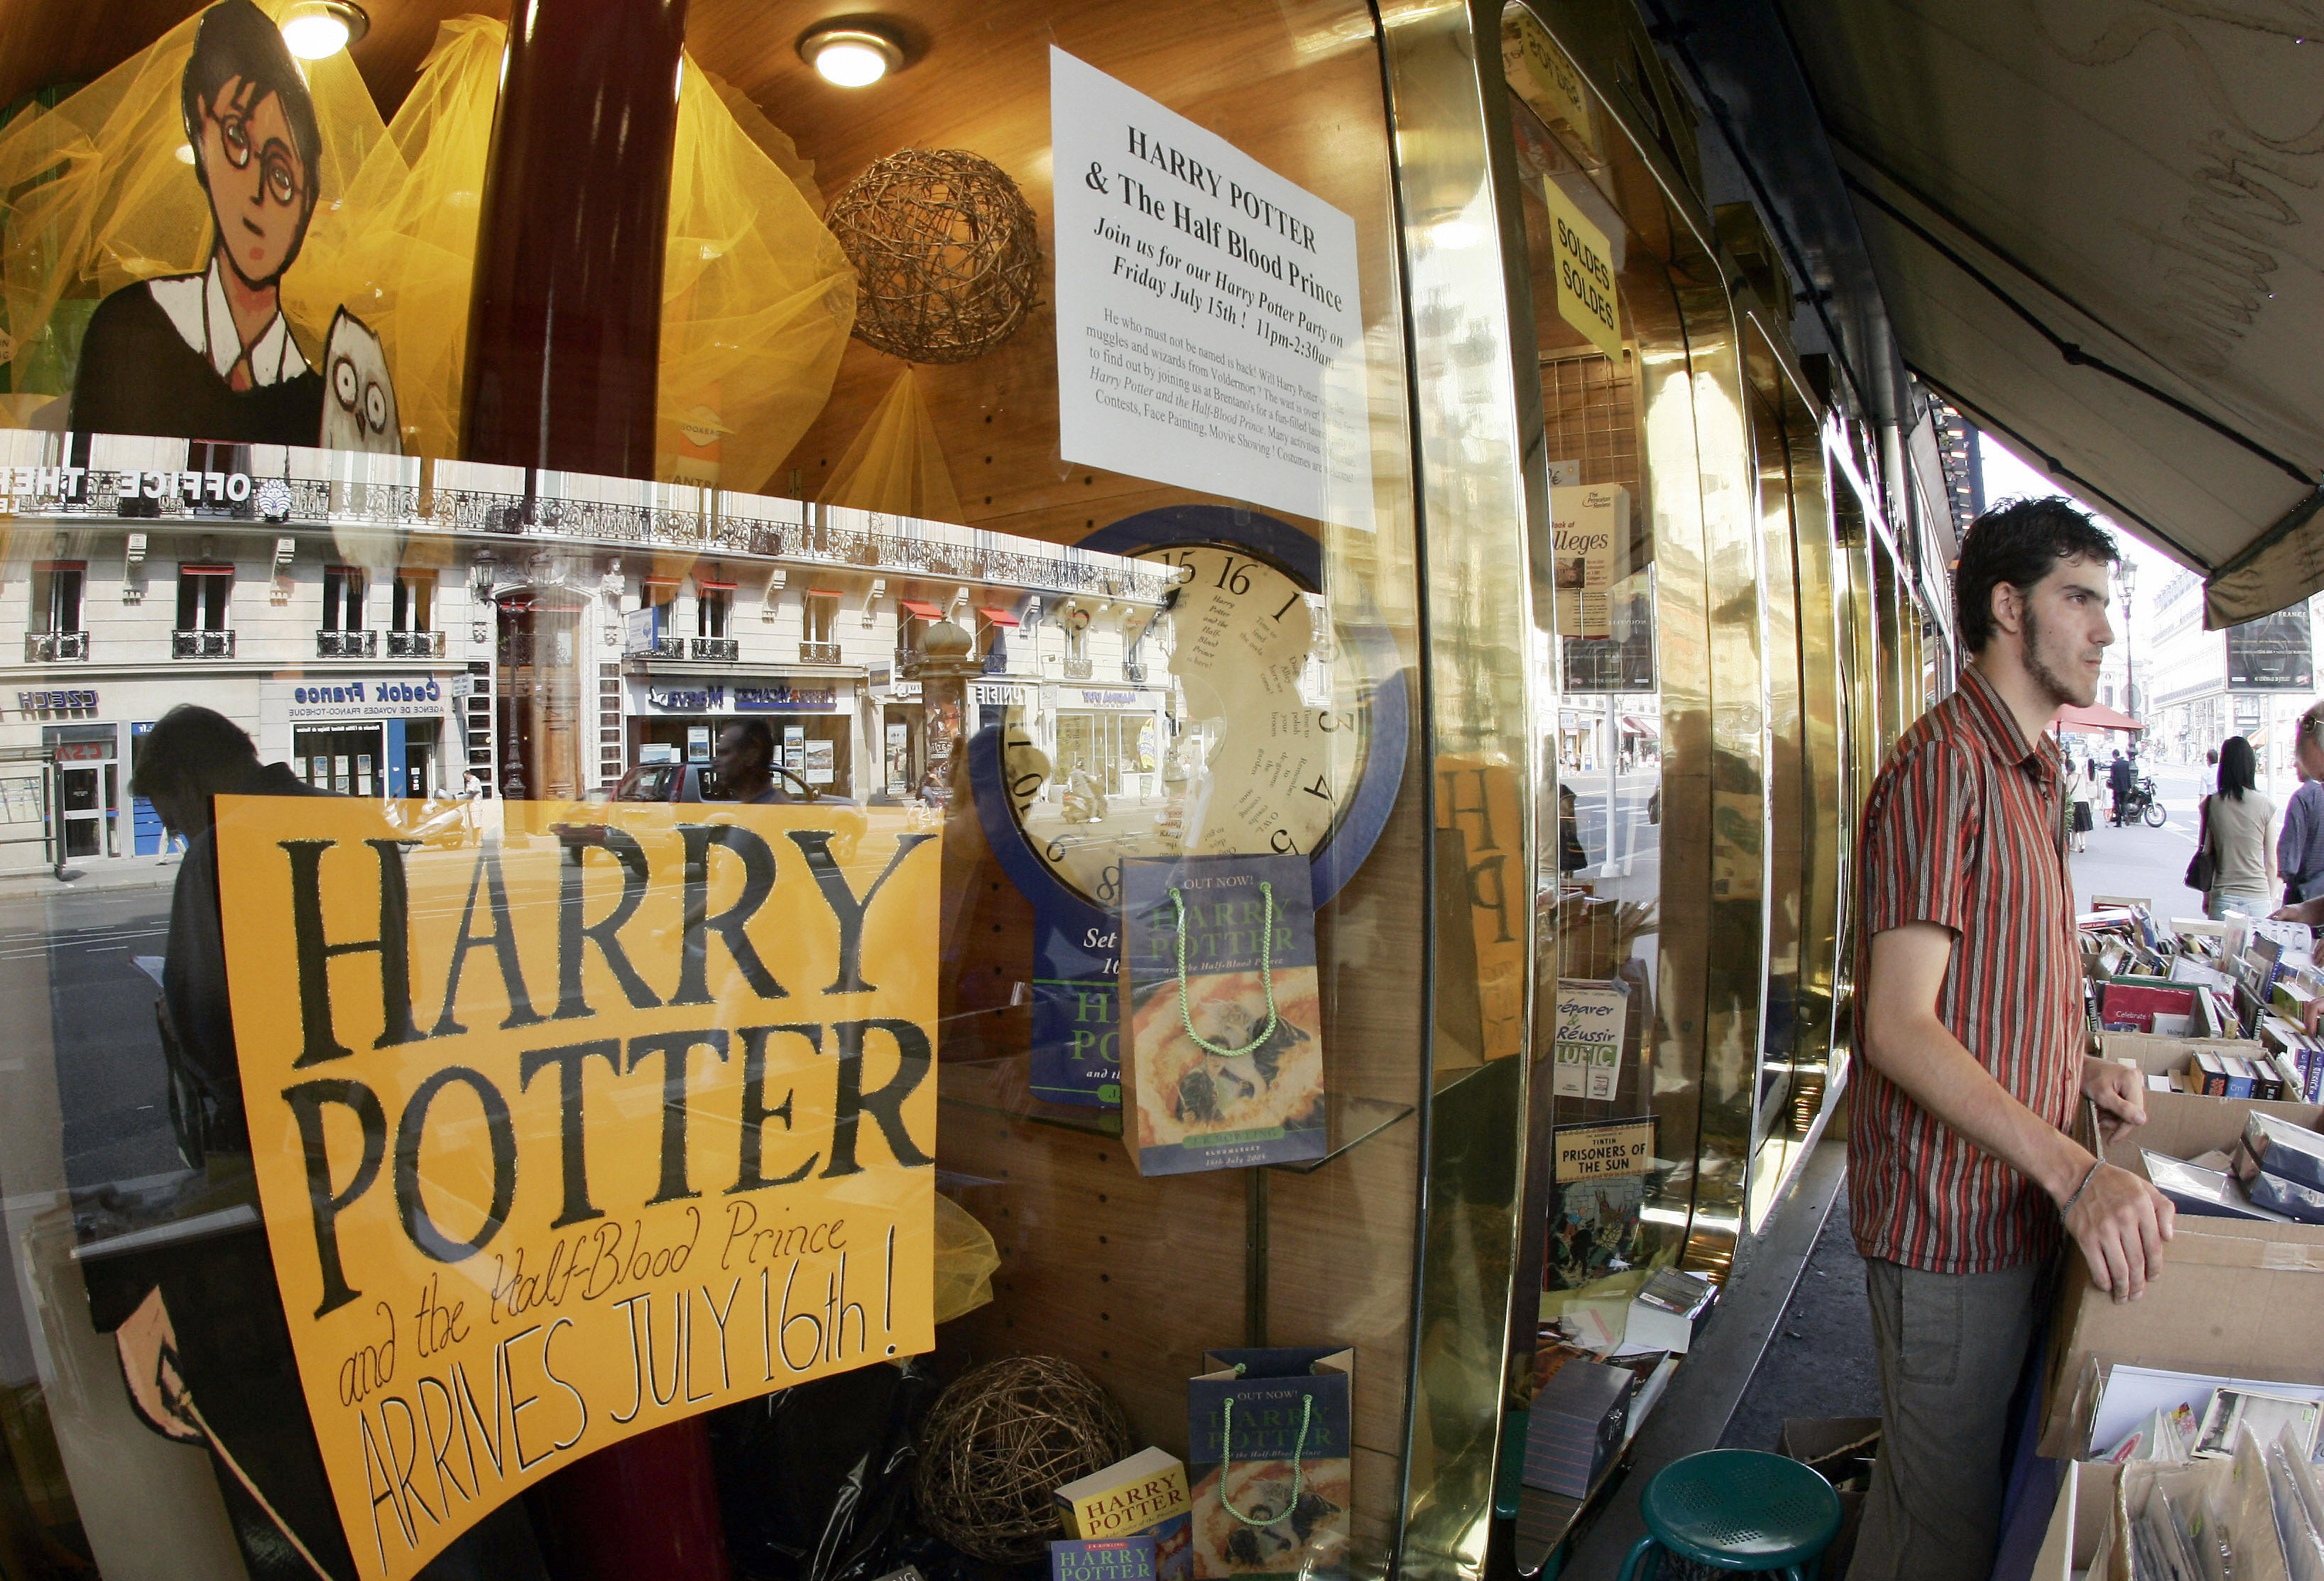 53241606 16 tropical storm hermine tweets & jokes from unhappy 'harry potter